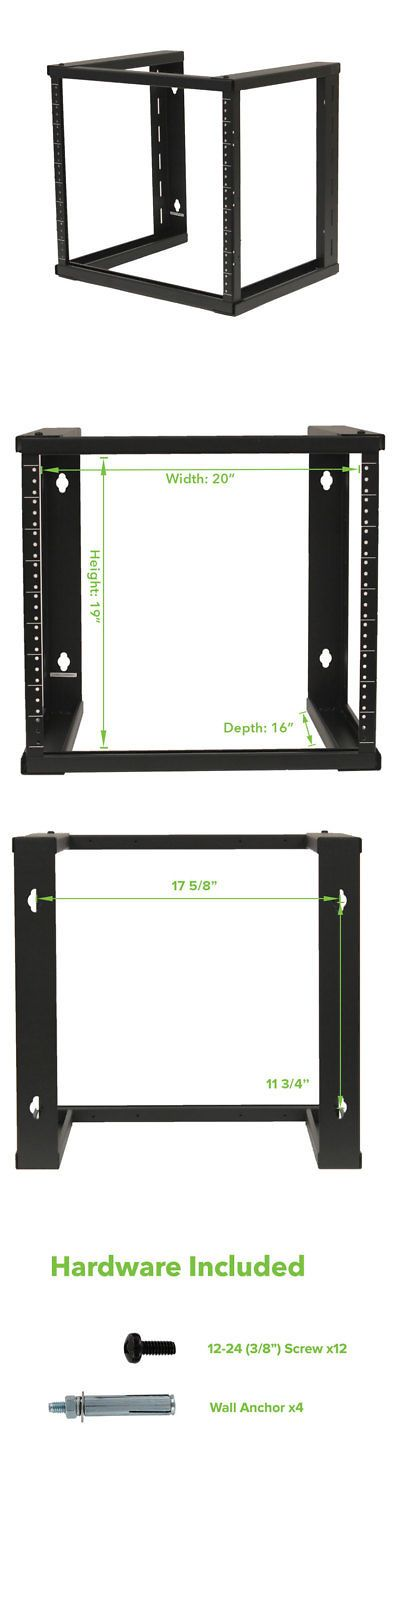 Rackmount Cabinets And Frames 51199 9u Wall Mount Open Frame 19 Server Equipment Rack Threaded 16 Inch Depth Black Buy It Now O Open Frame Frame Wall Mount